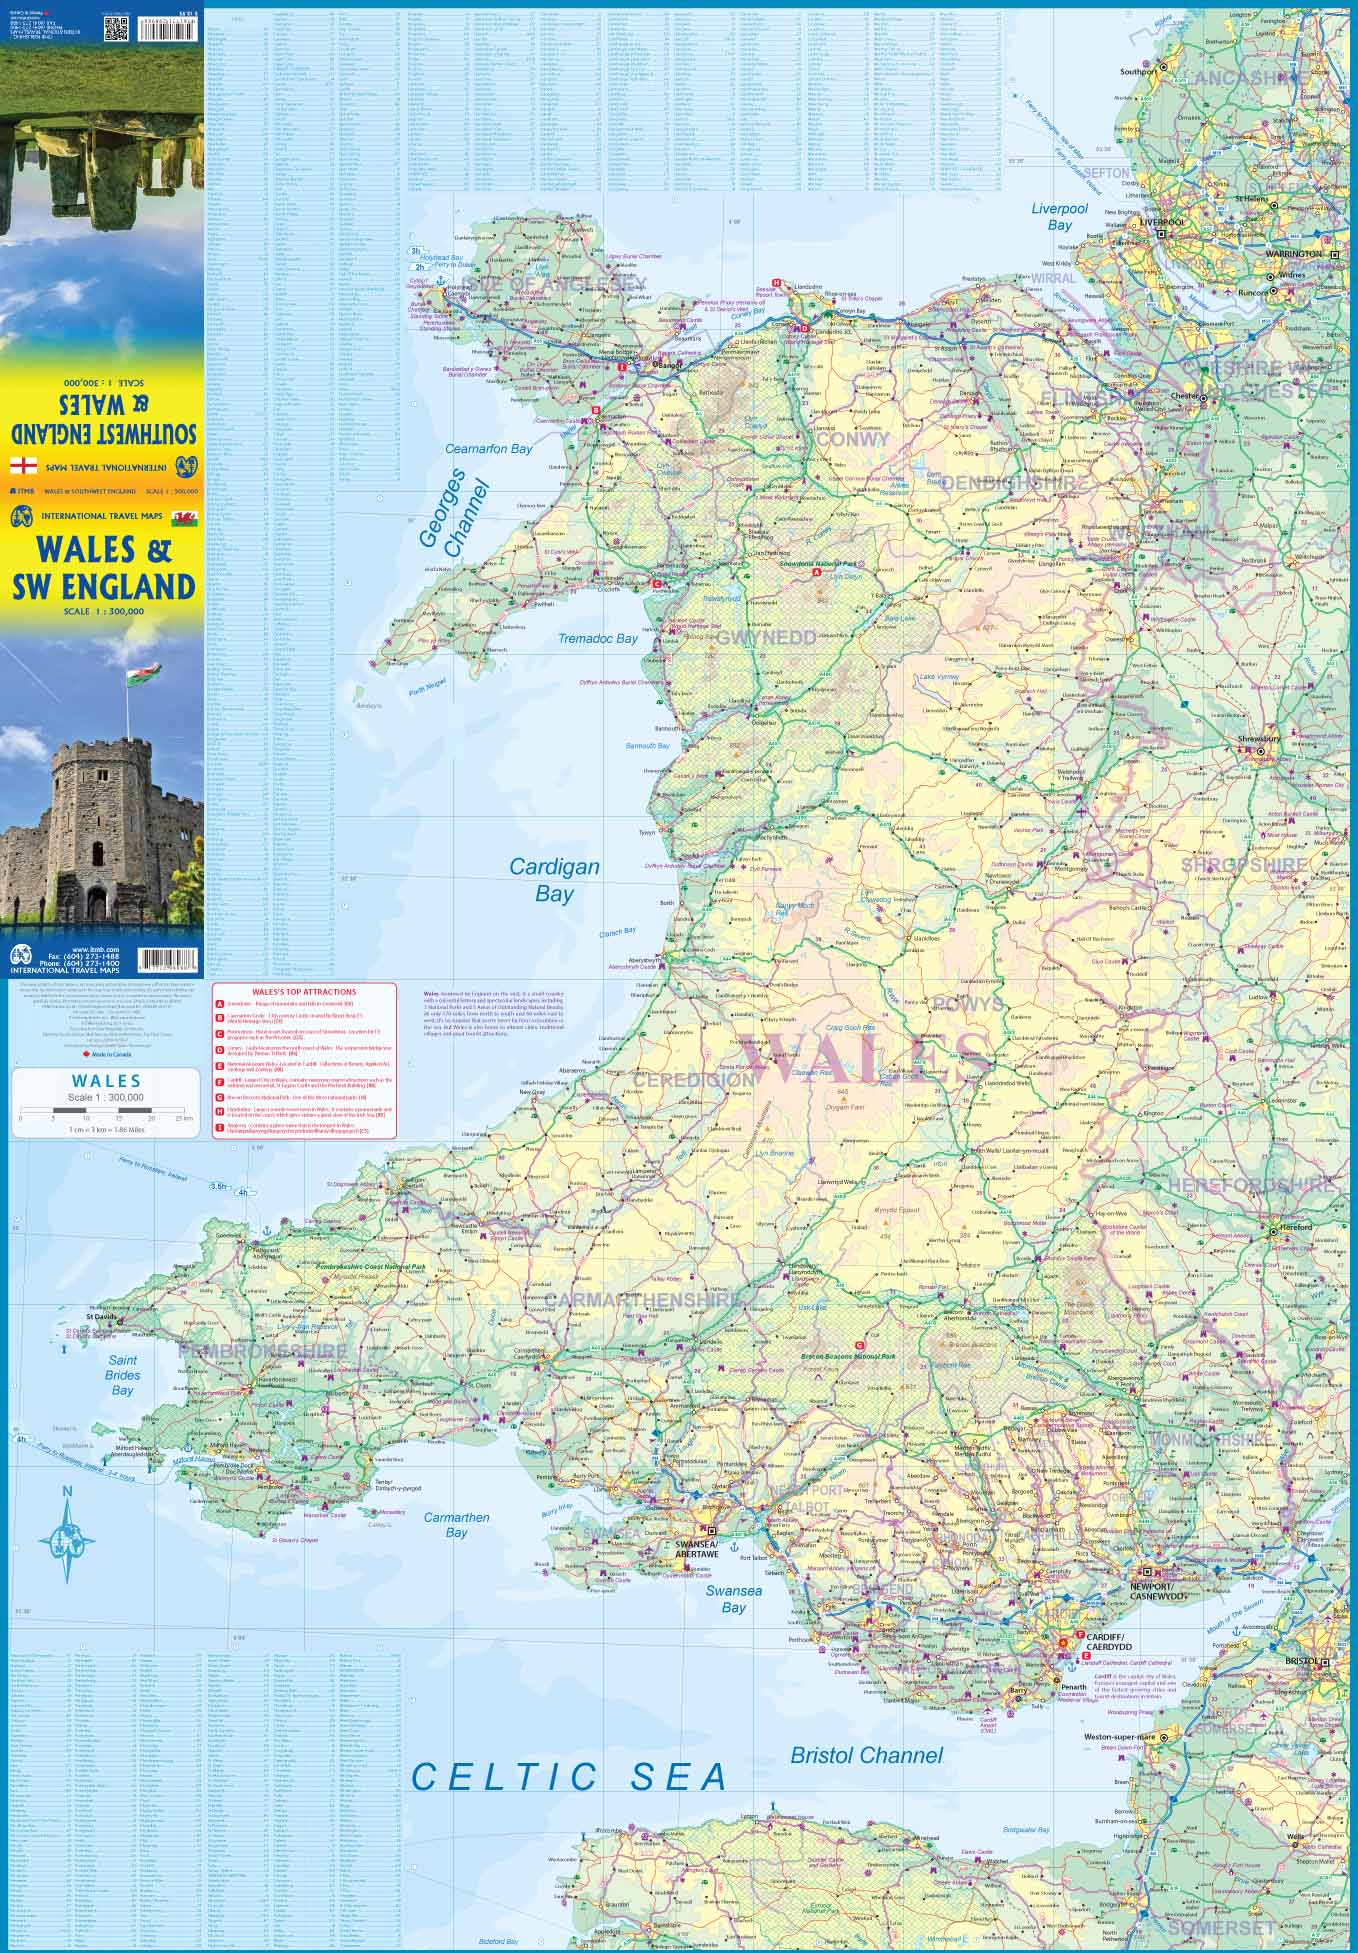 Map Of West Of England.Wales South West England Travel Holiday Map